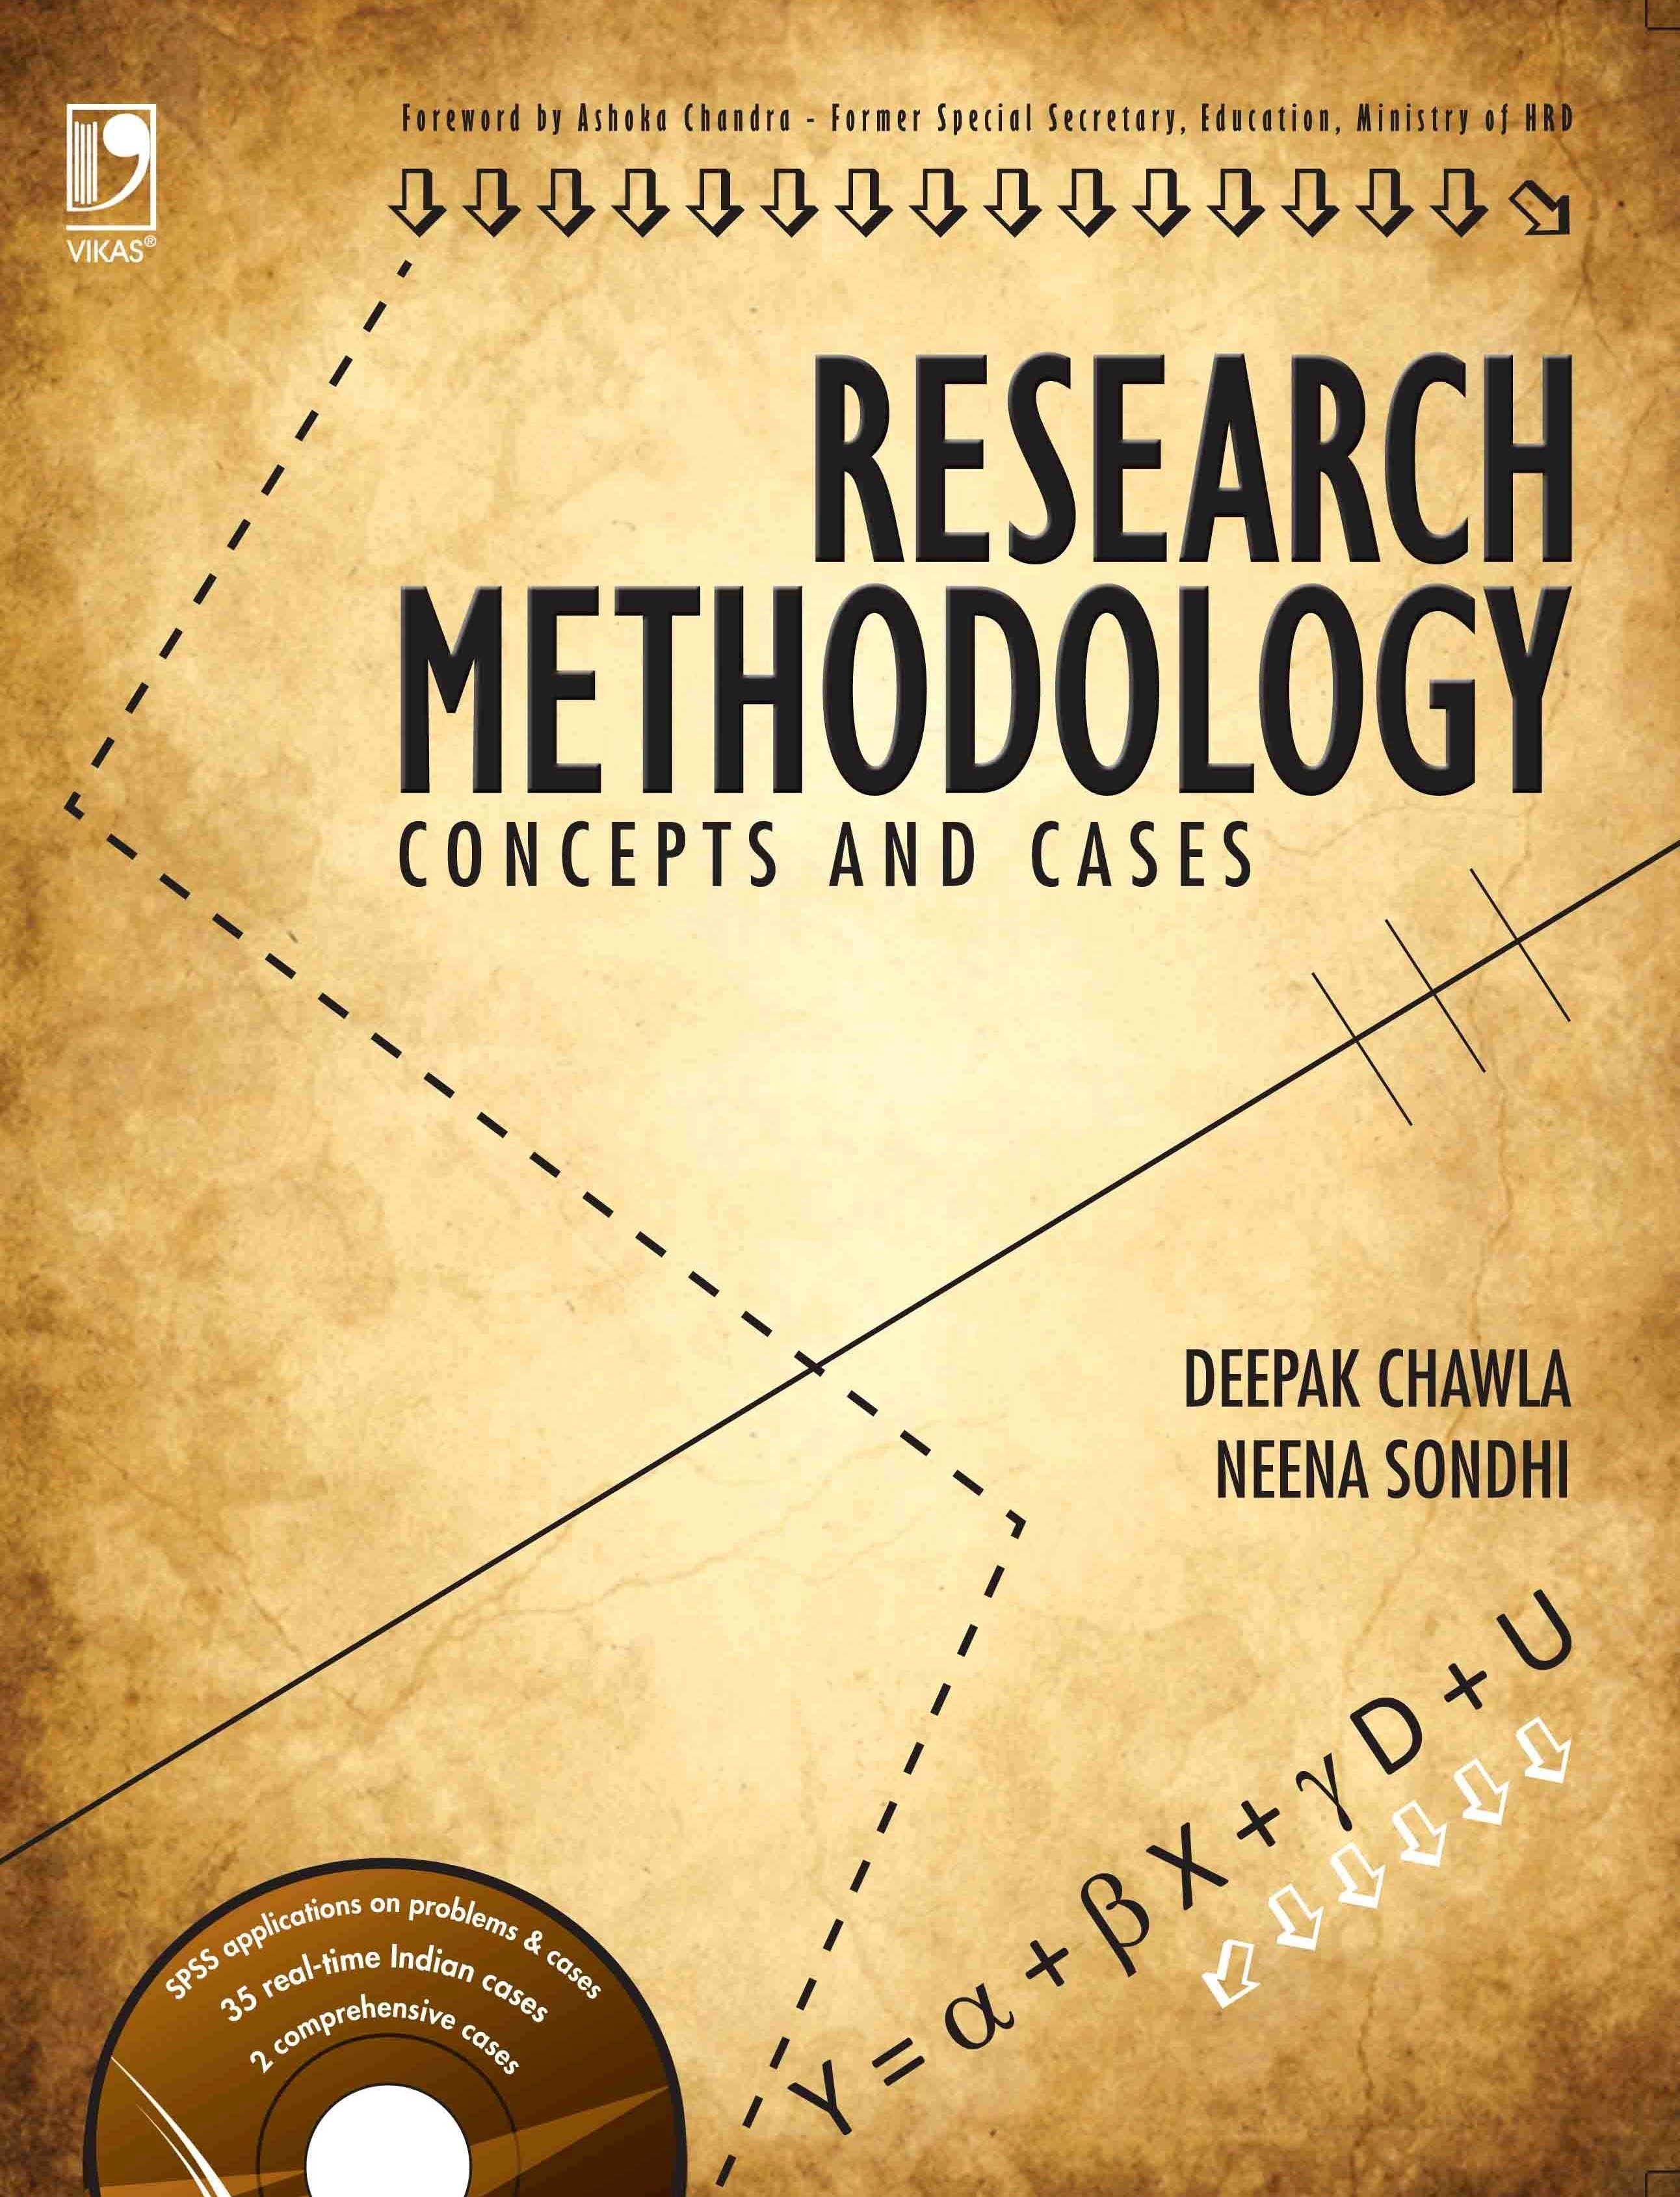 books for research methodology Sage research methods is the essential online resource for anyone doing research or learning how to do research with more than 800 books, reference works, journal articles, and videos from.